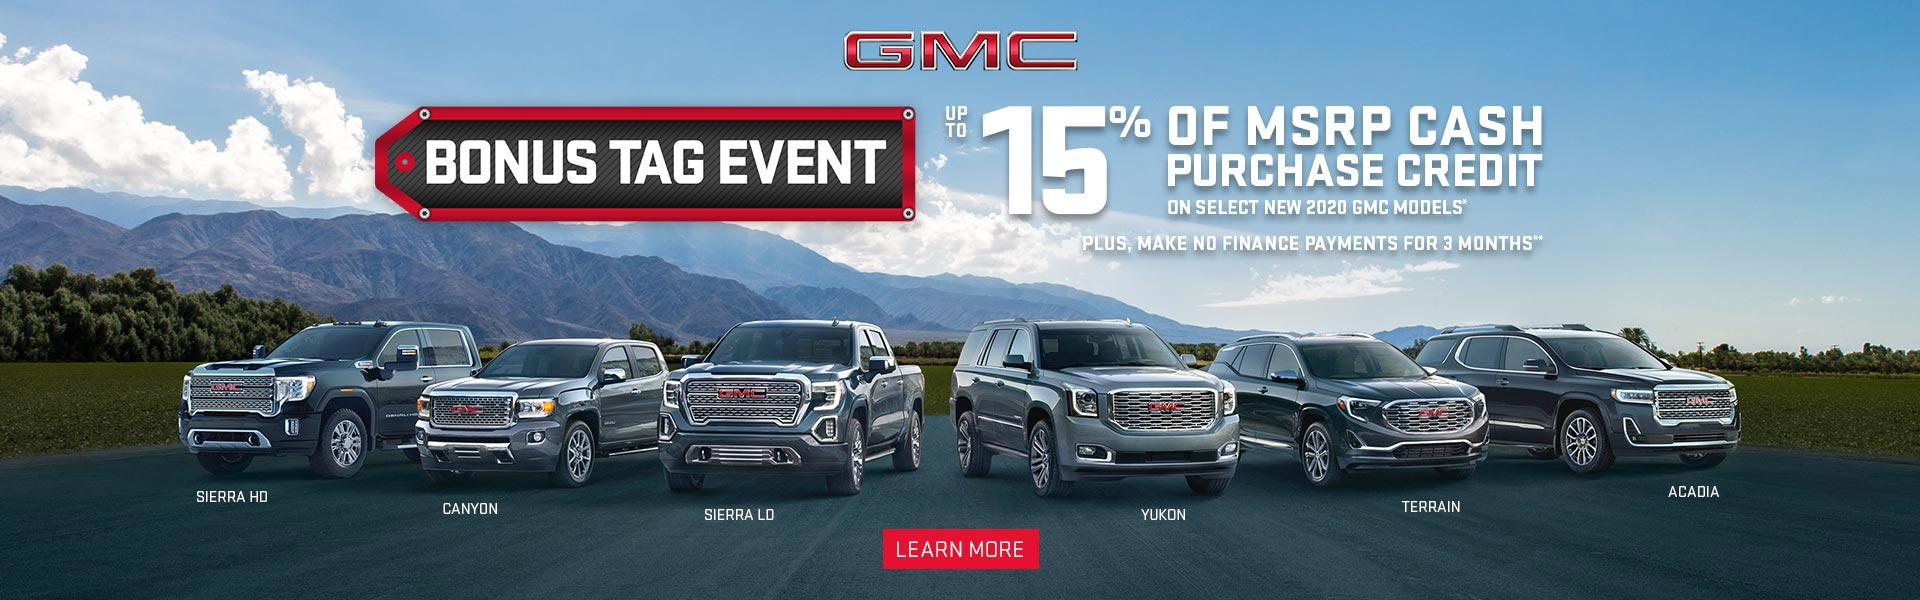 GMCCA - Western - GMC Global